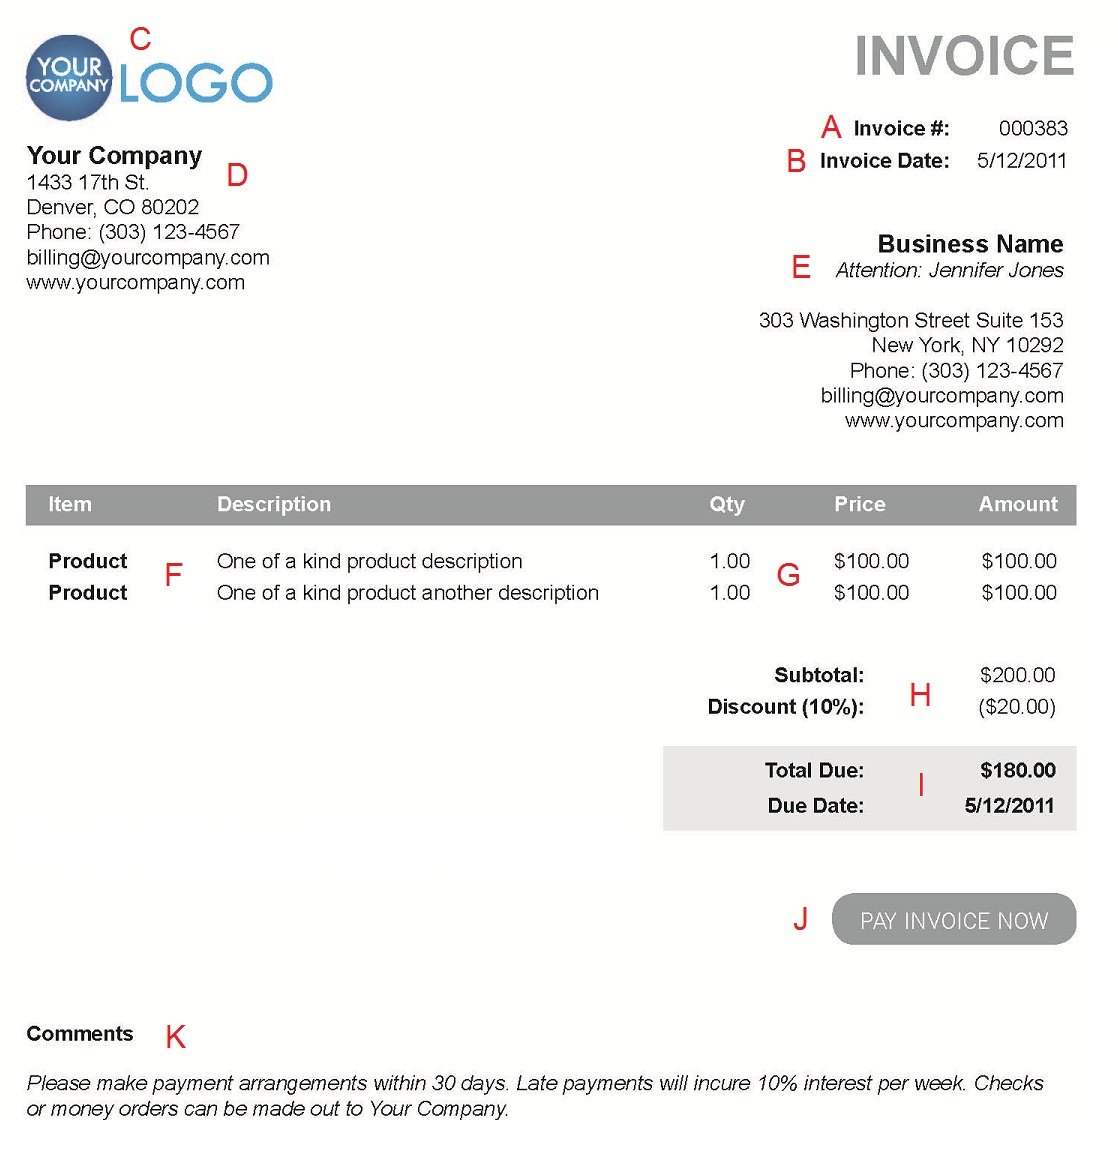 Coolmathgamesus  Splendid The  Different Sections Of An Electronic Payment Invoice With Great A  With Attractive Po For Invoice Also Invoice Fedex In Addition Nice Invoice Template And Invoicing As A Sole Trader As Well As Invoice S Additionally Proforma Commercial Invoice From Paysimplecom With Coolmathgamesus  Great The  Different Sections Of An Electronic Payment Invoice With Attractive A  And Splendid Po For Invoice Also Invoice Fedex In Addition Nice Invoice Template From Paysimplecom